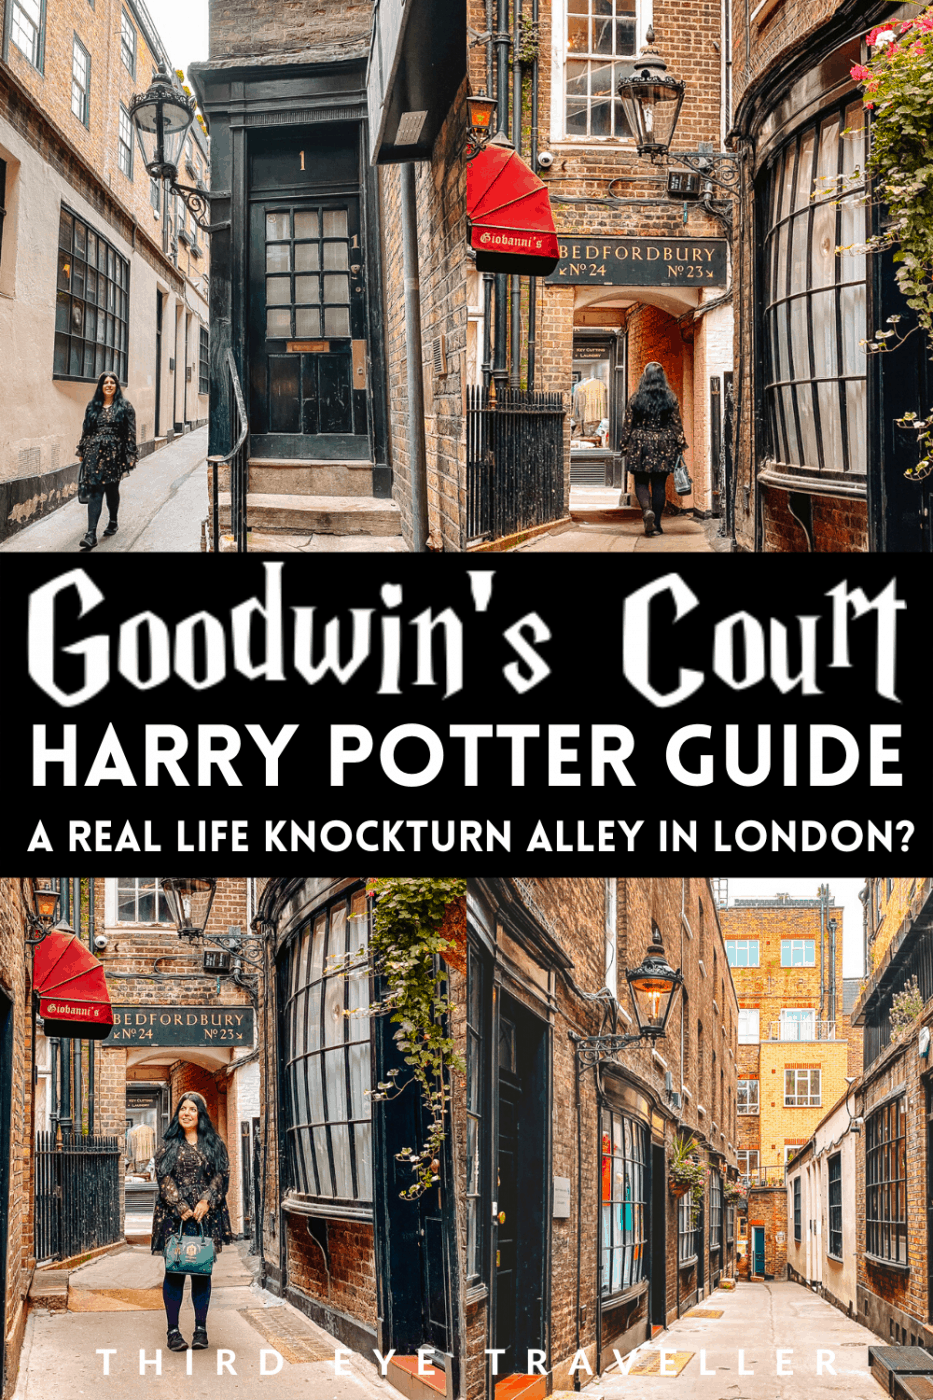 Harry Potter Goodwin's Court London Knockturn Alley Diagon Alley